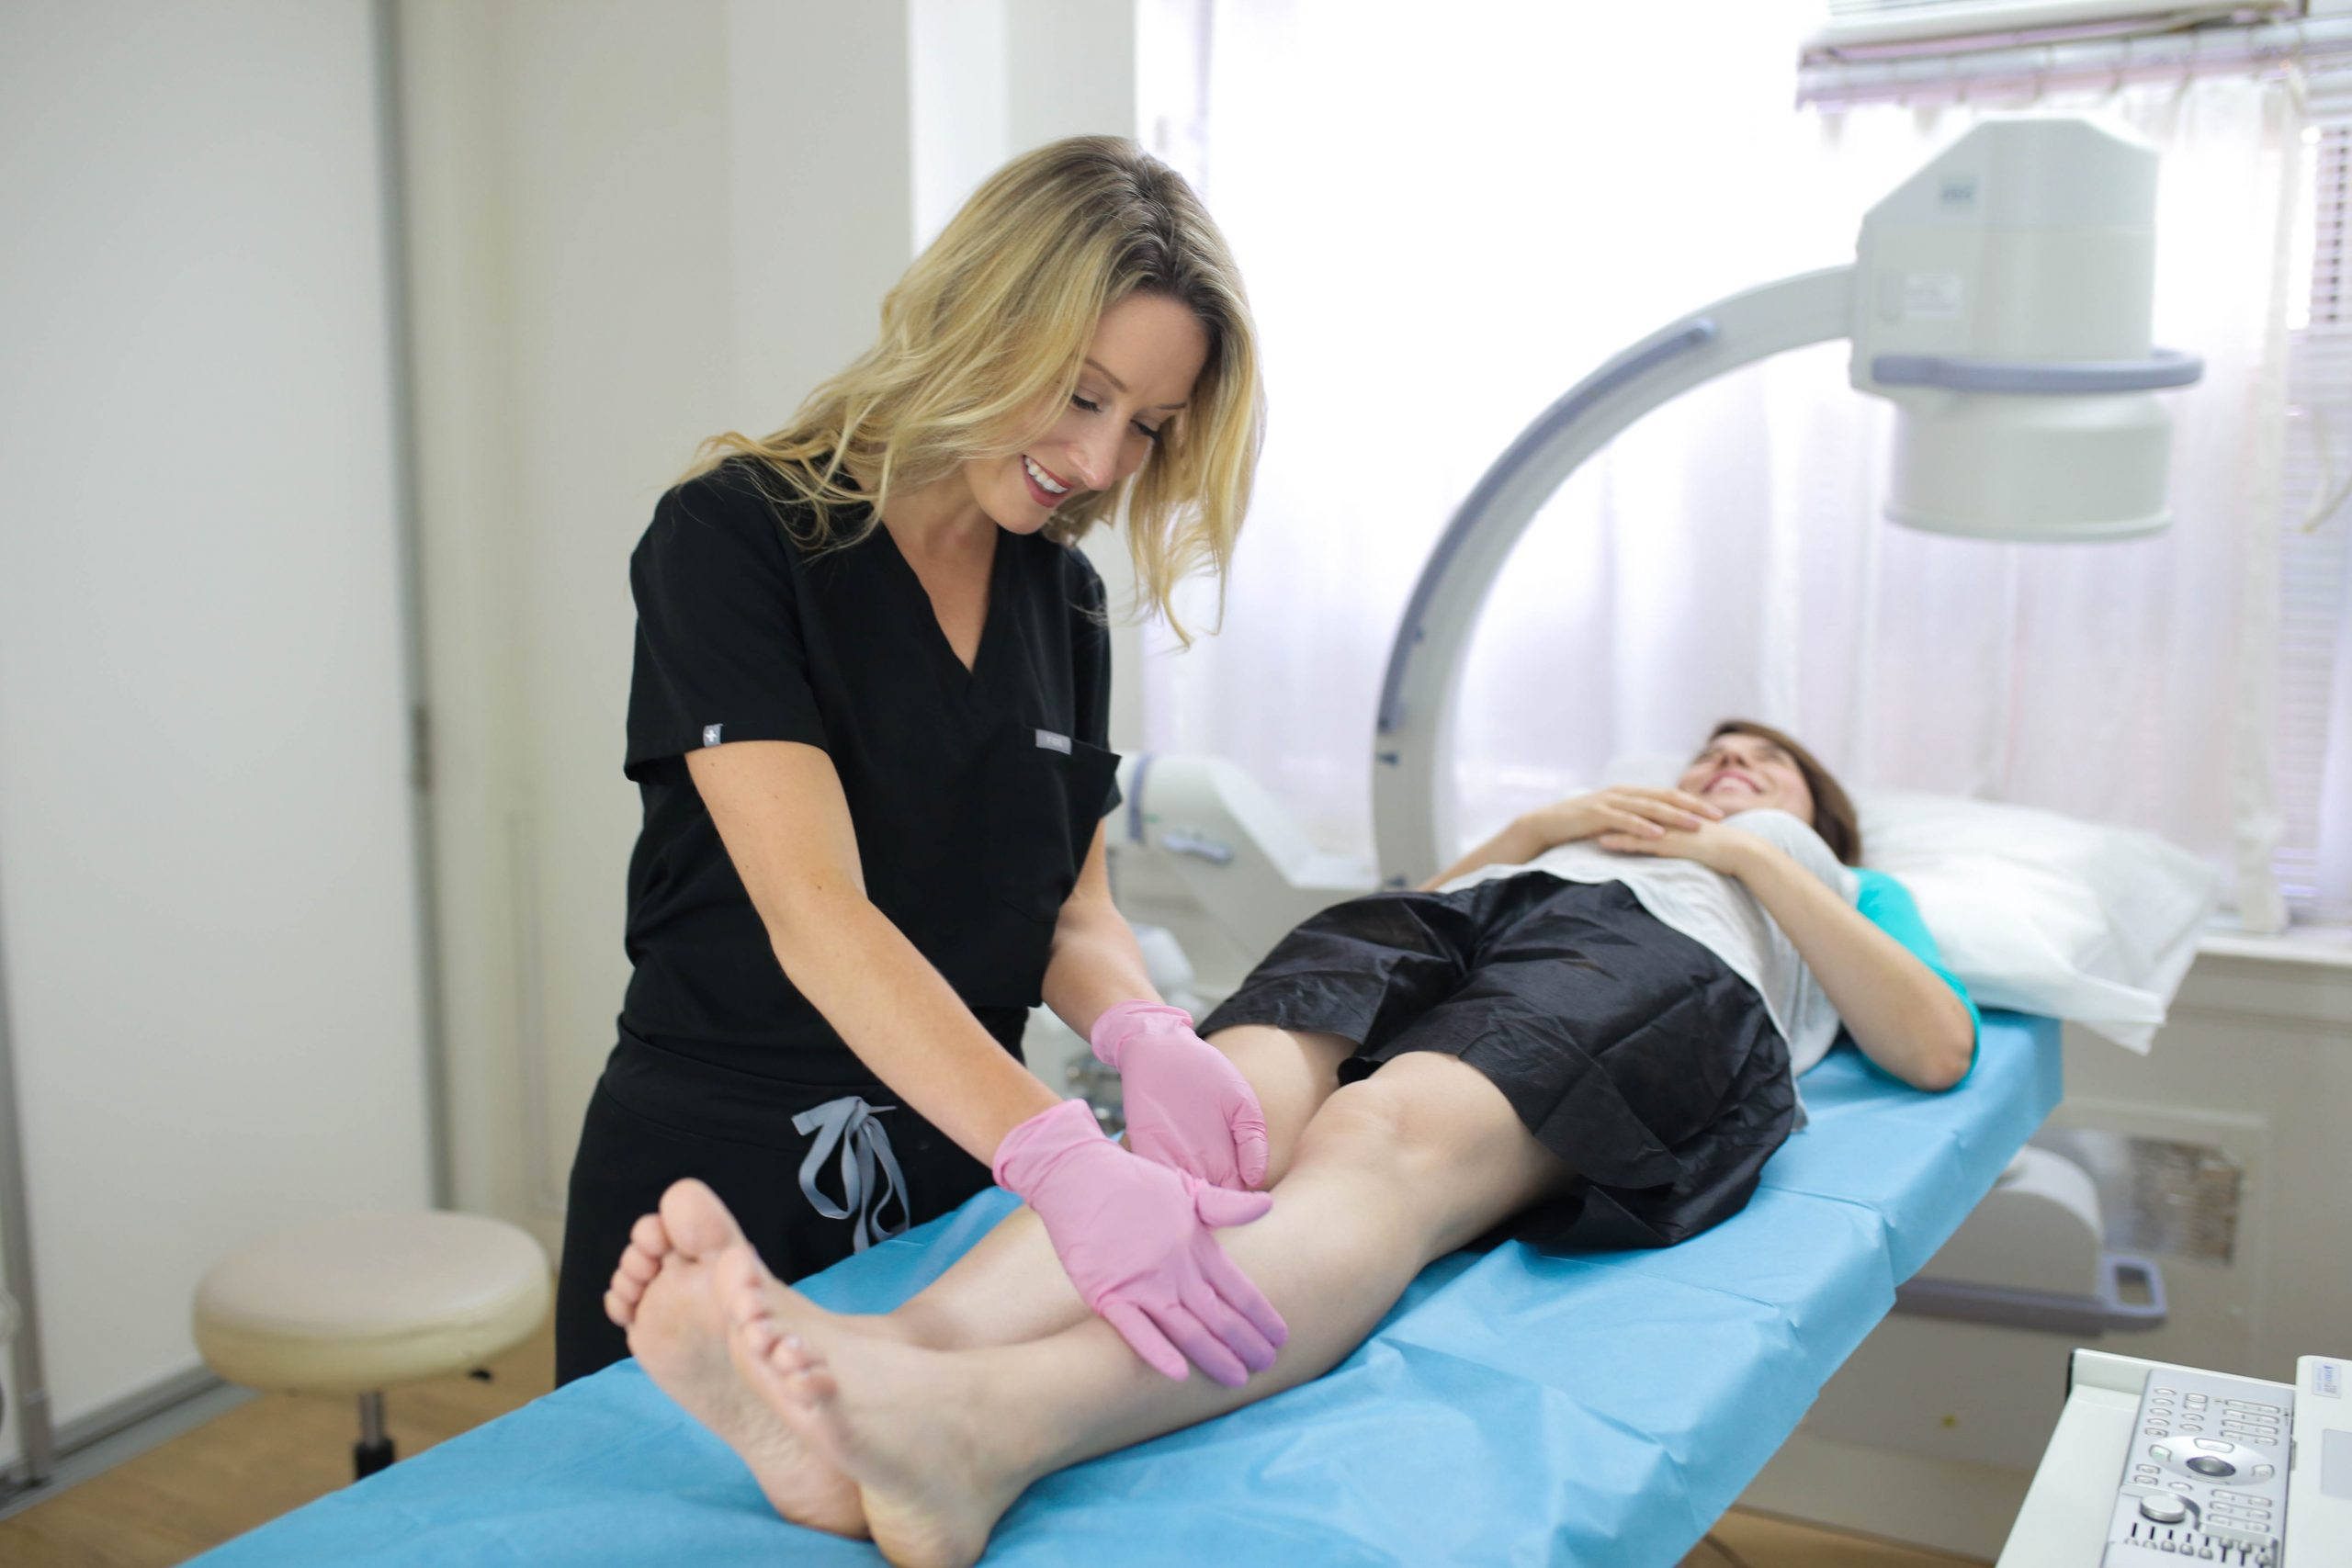 Are you looking for the best varicose vein doctor near Newark? This article introduces you to the best vein doctors and answers crucial questions about varicose vein treatments.